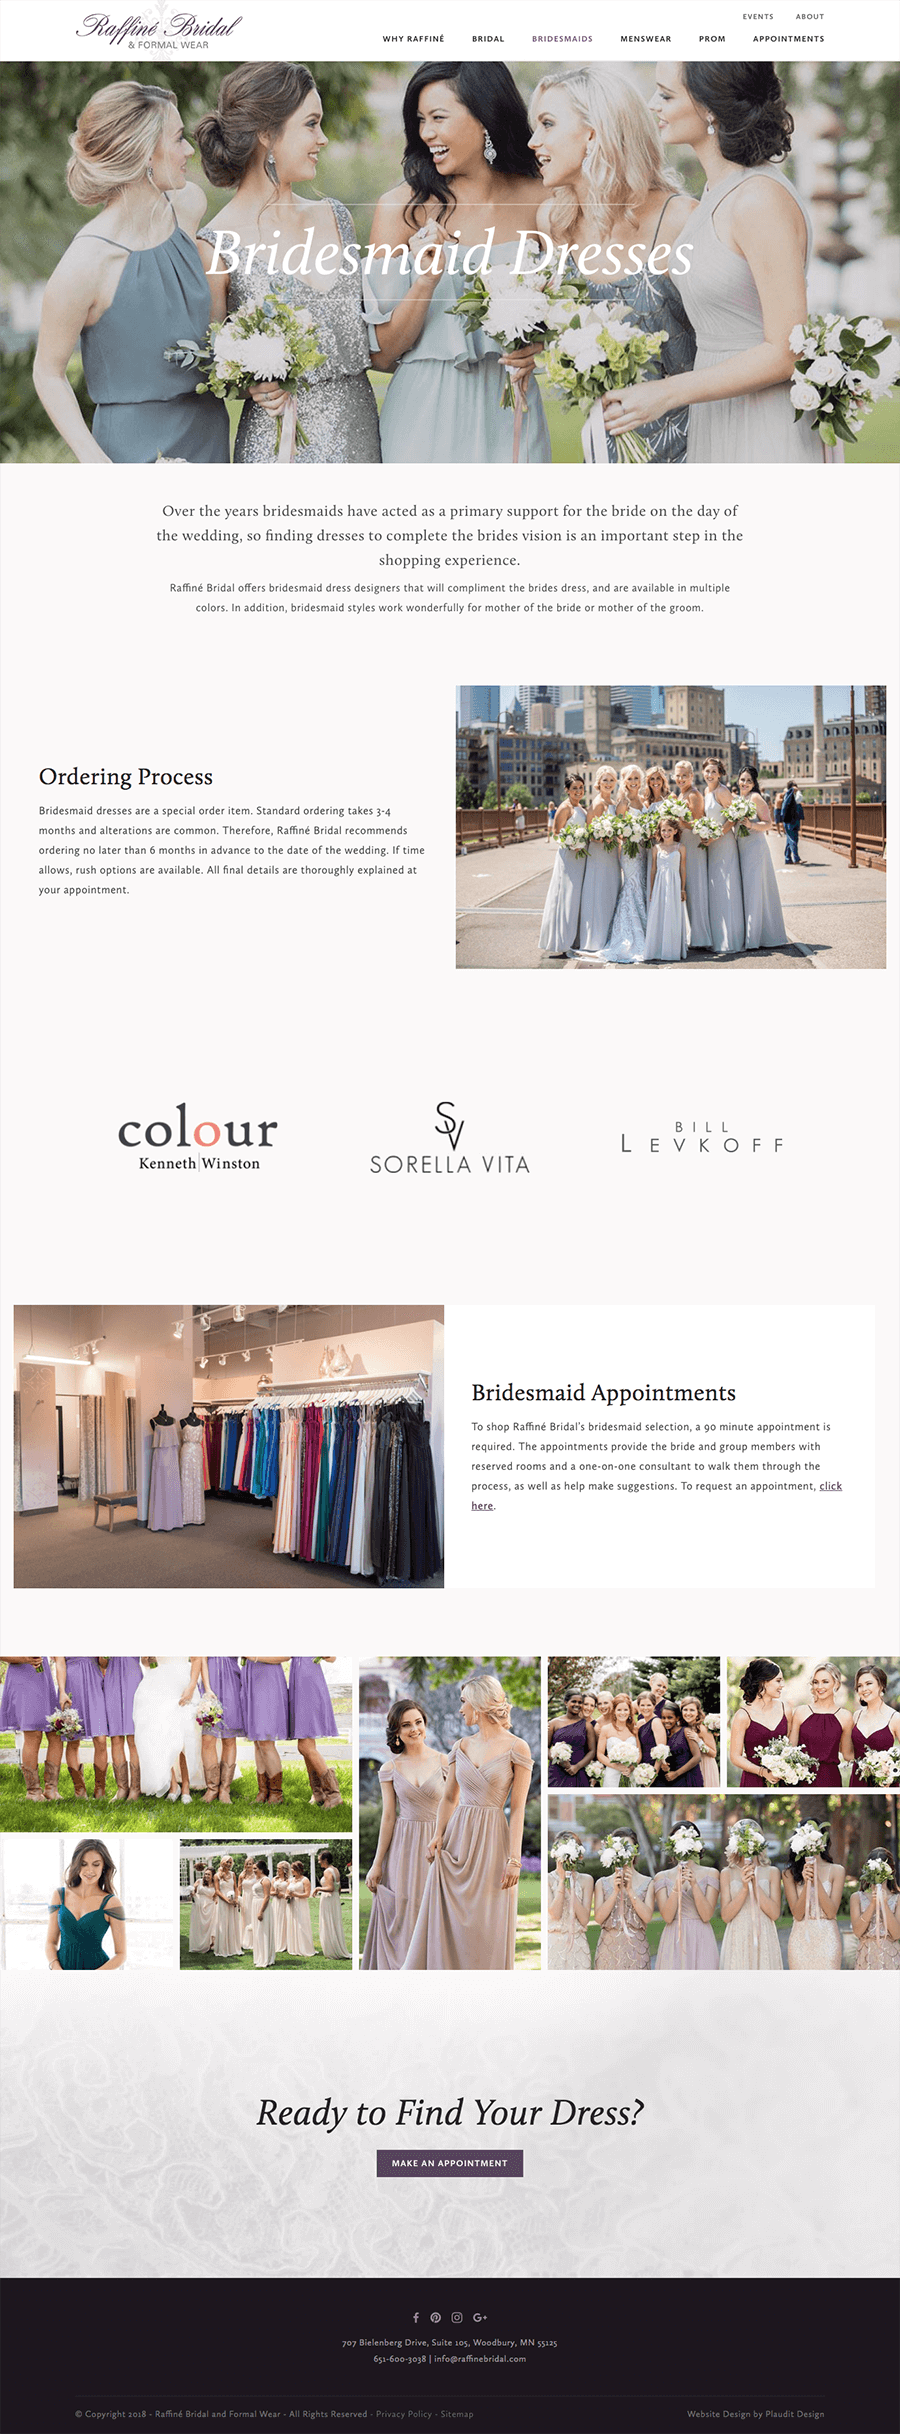 Screenshot of bridesmaids page on Raffine Bridal website.